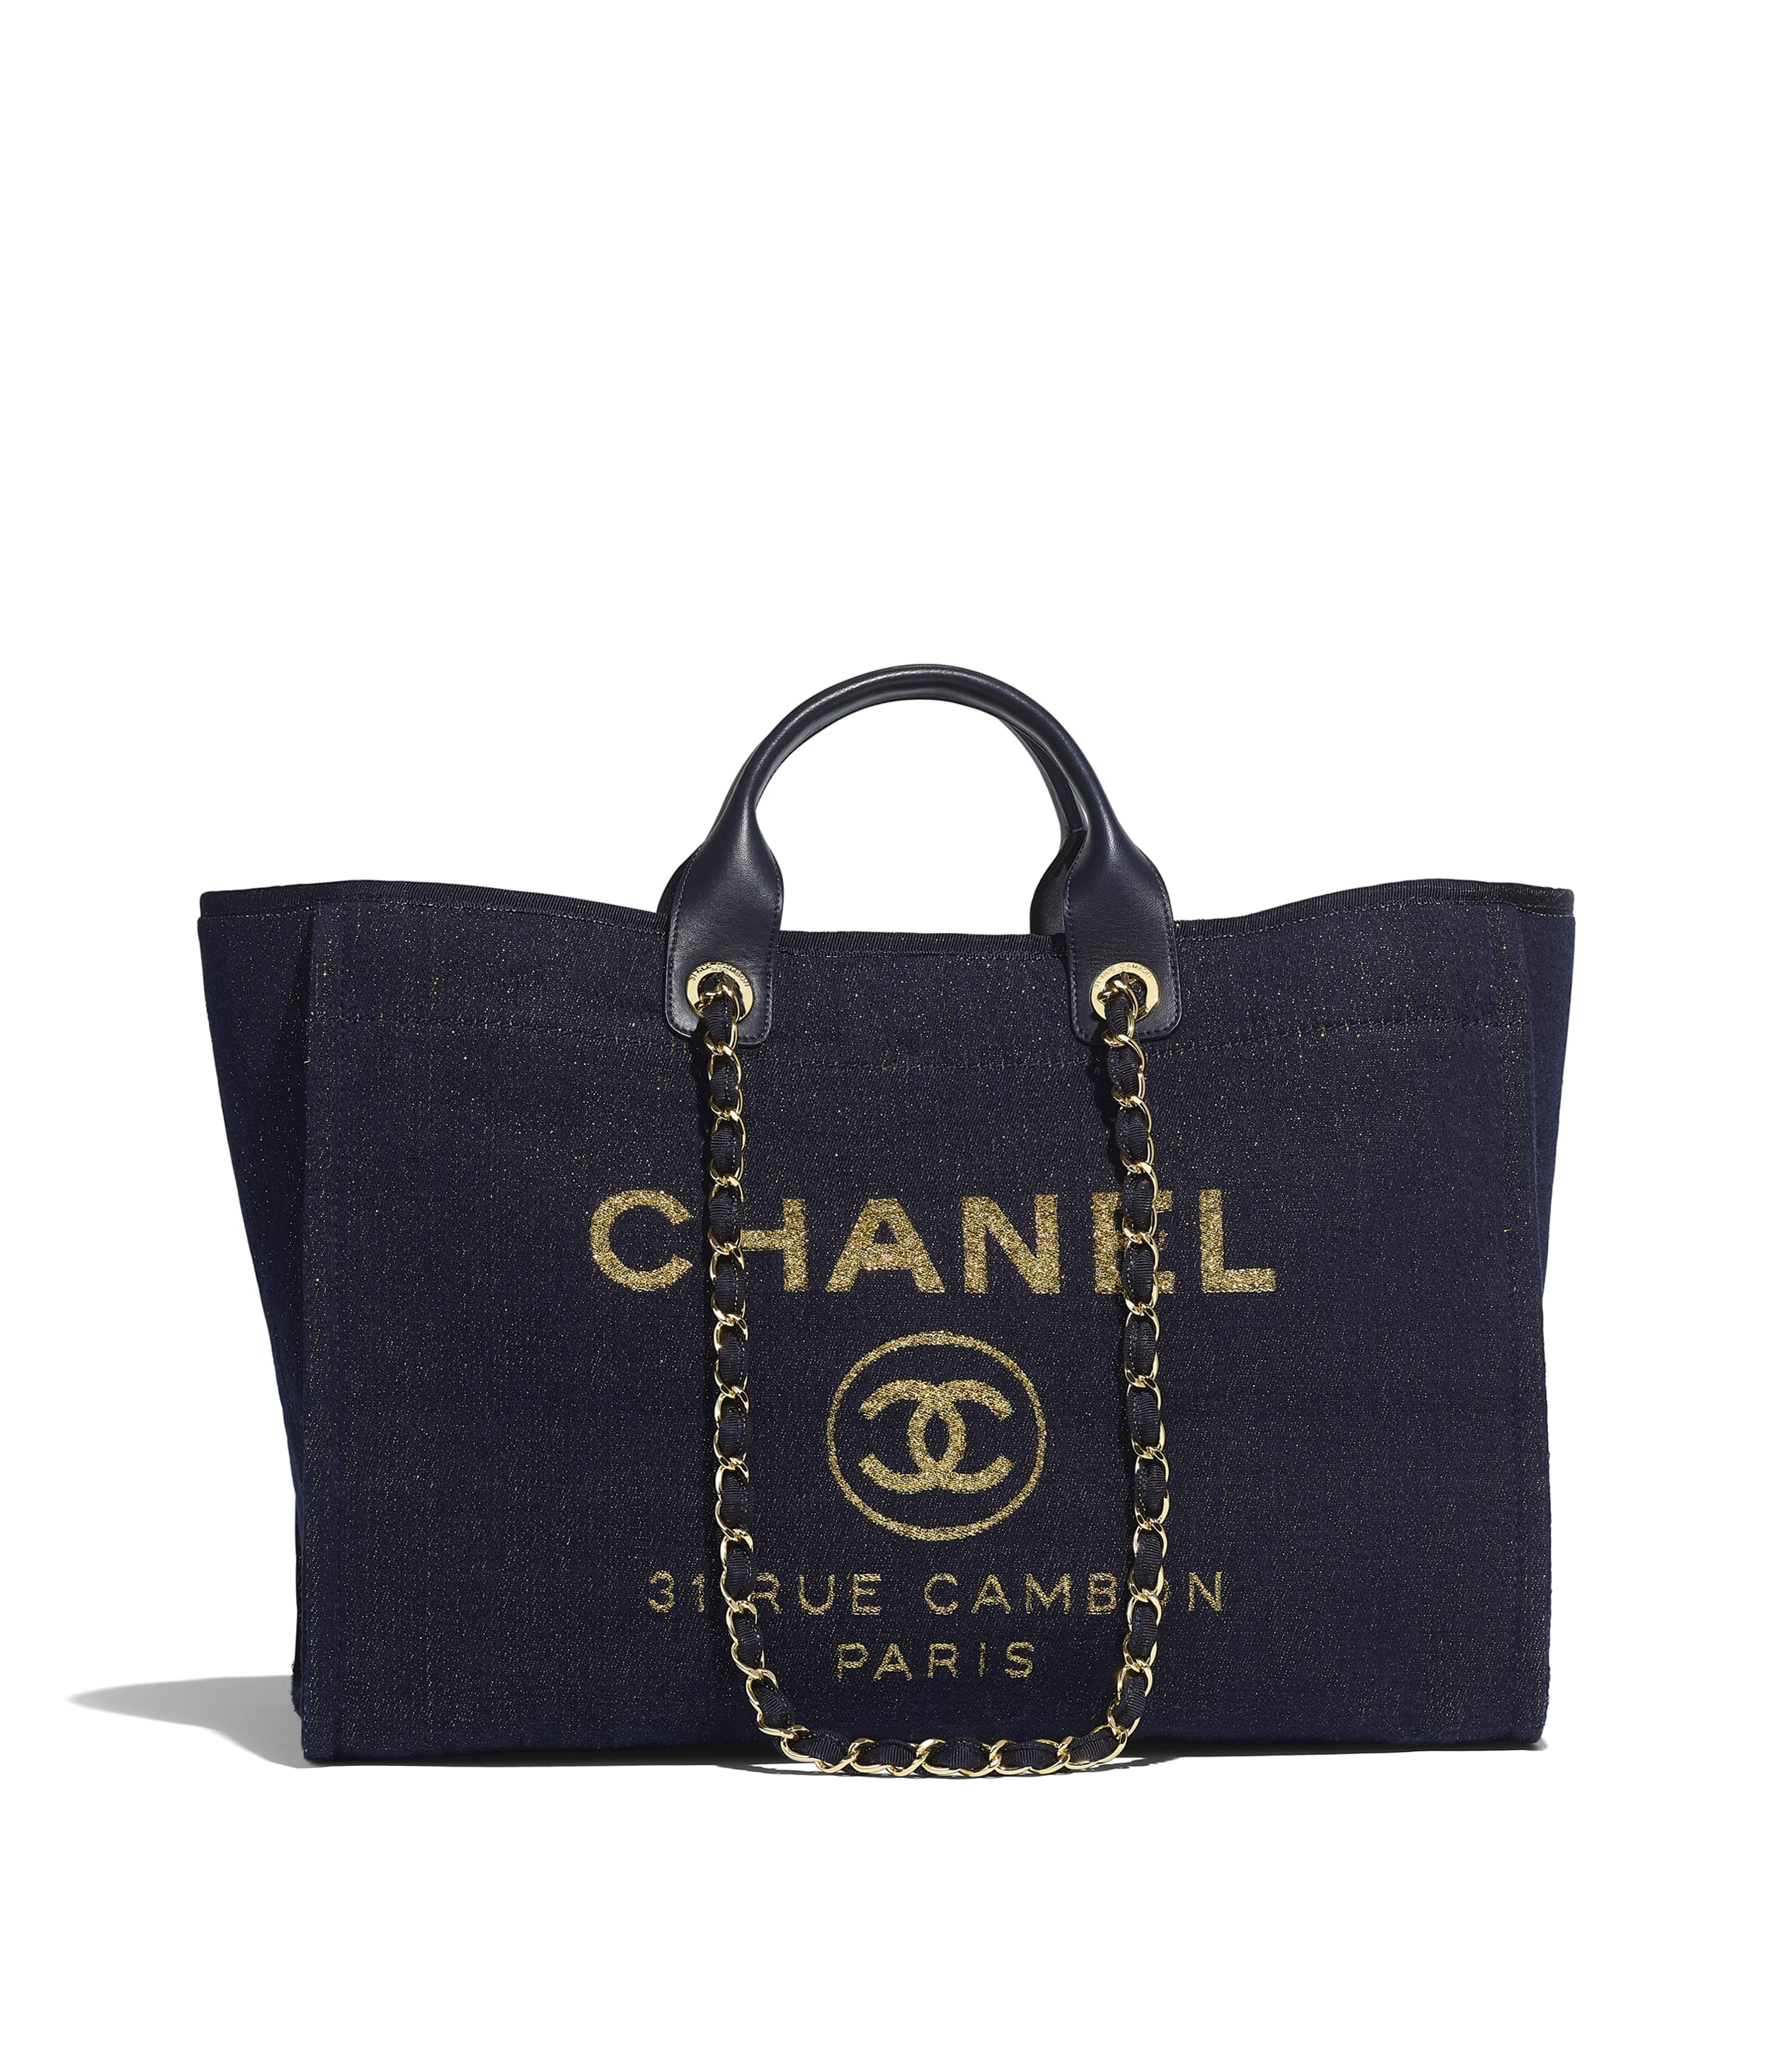 a4cc306672fb0f Tote Bags - Handbags - CHANEL